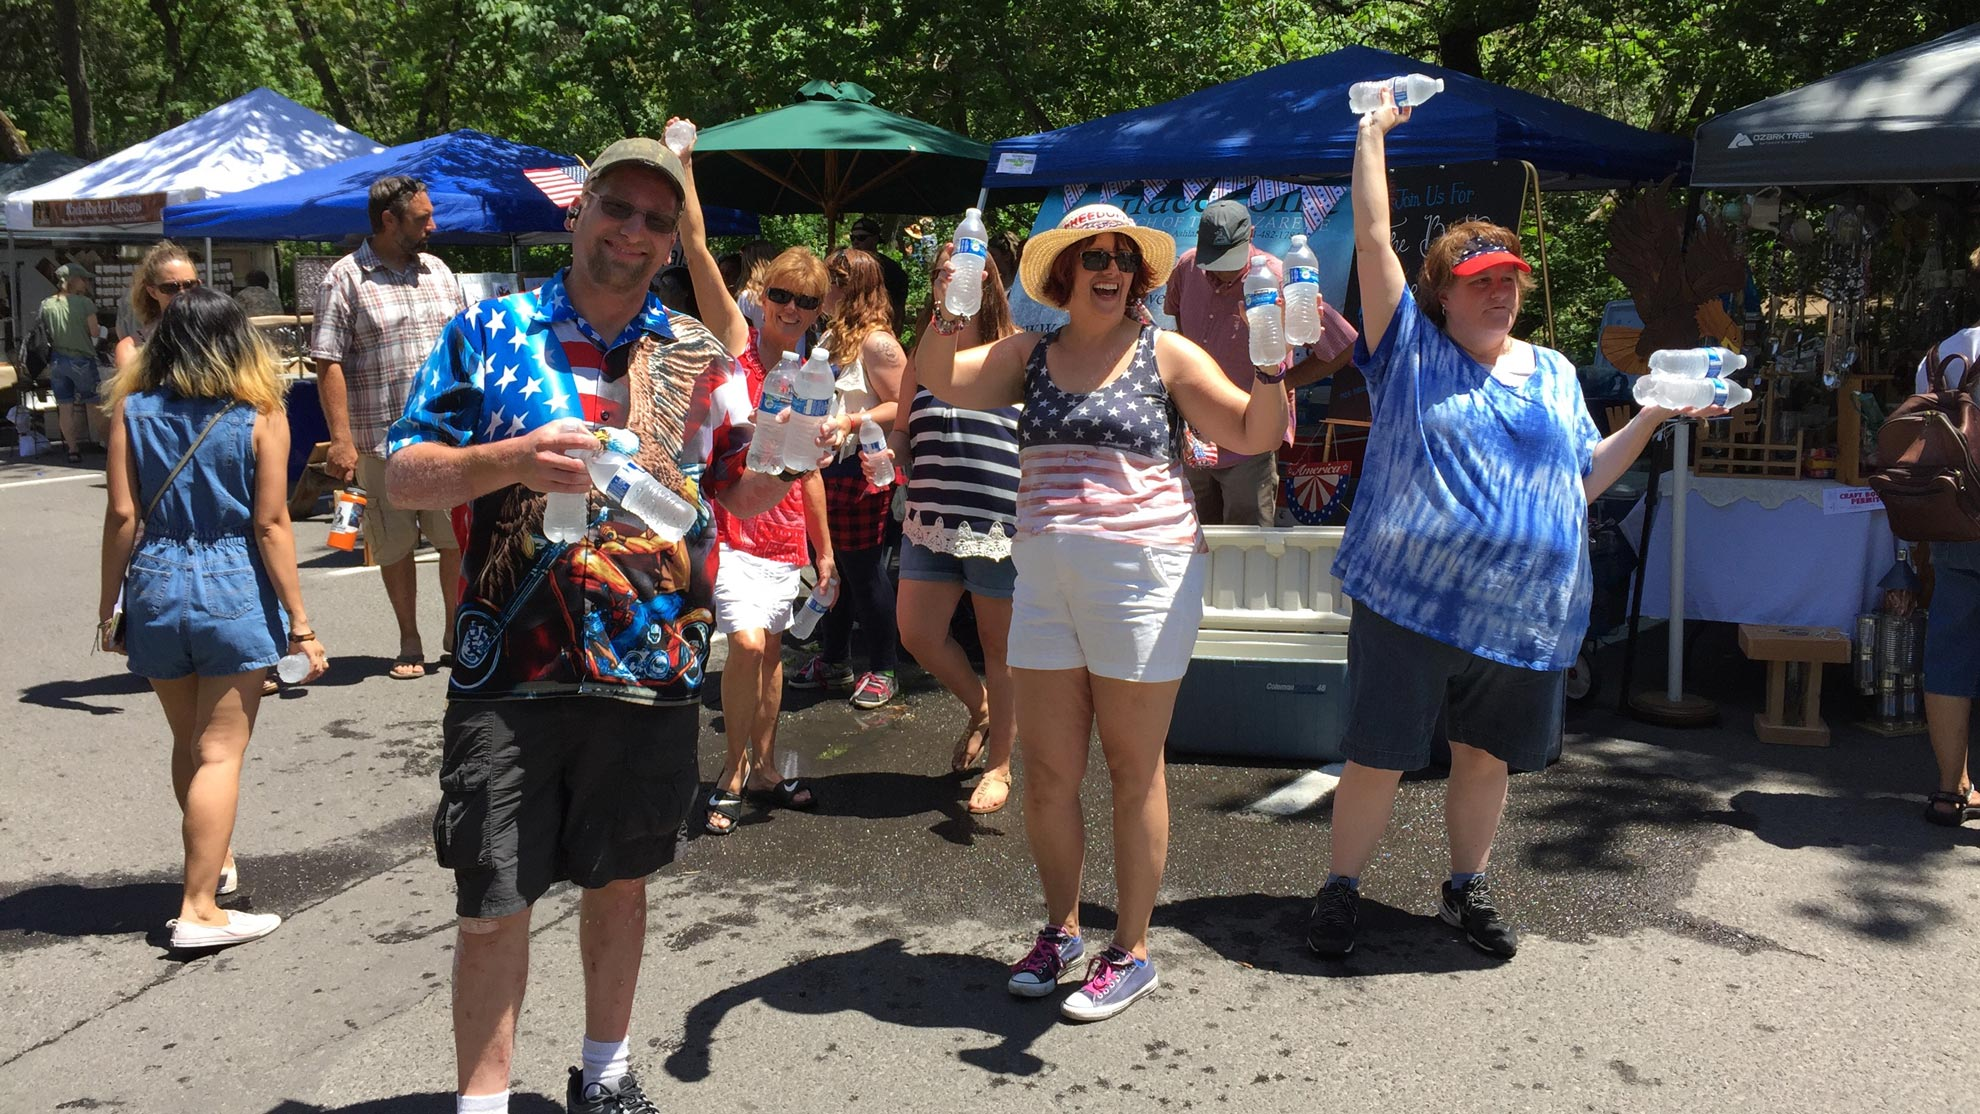 Tim, Donna, John, Tiffany, Cynthia, and Angelia Handing Out Water